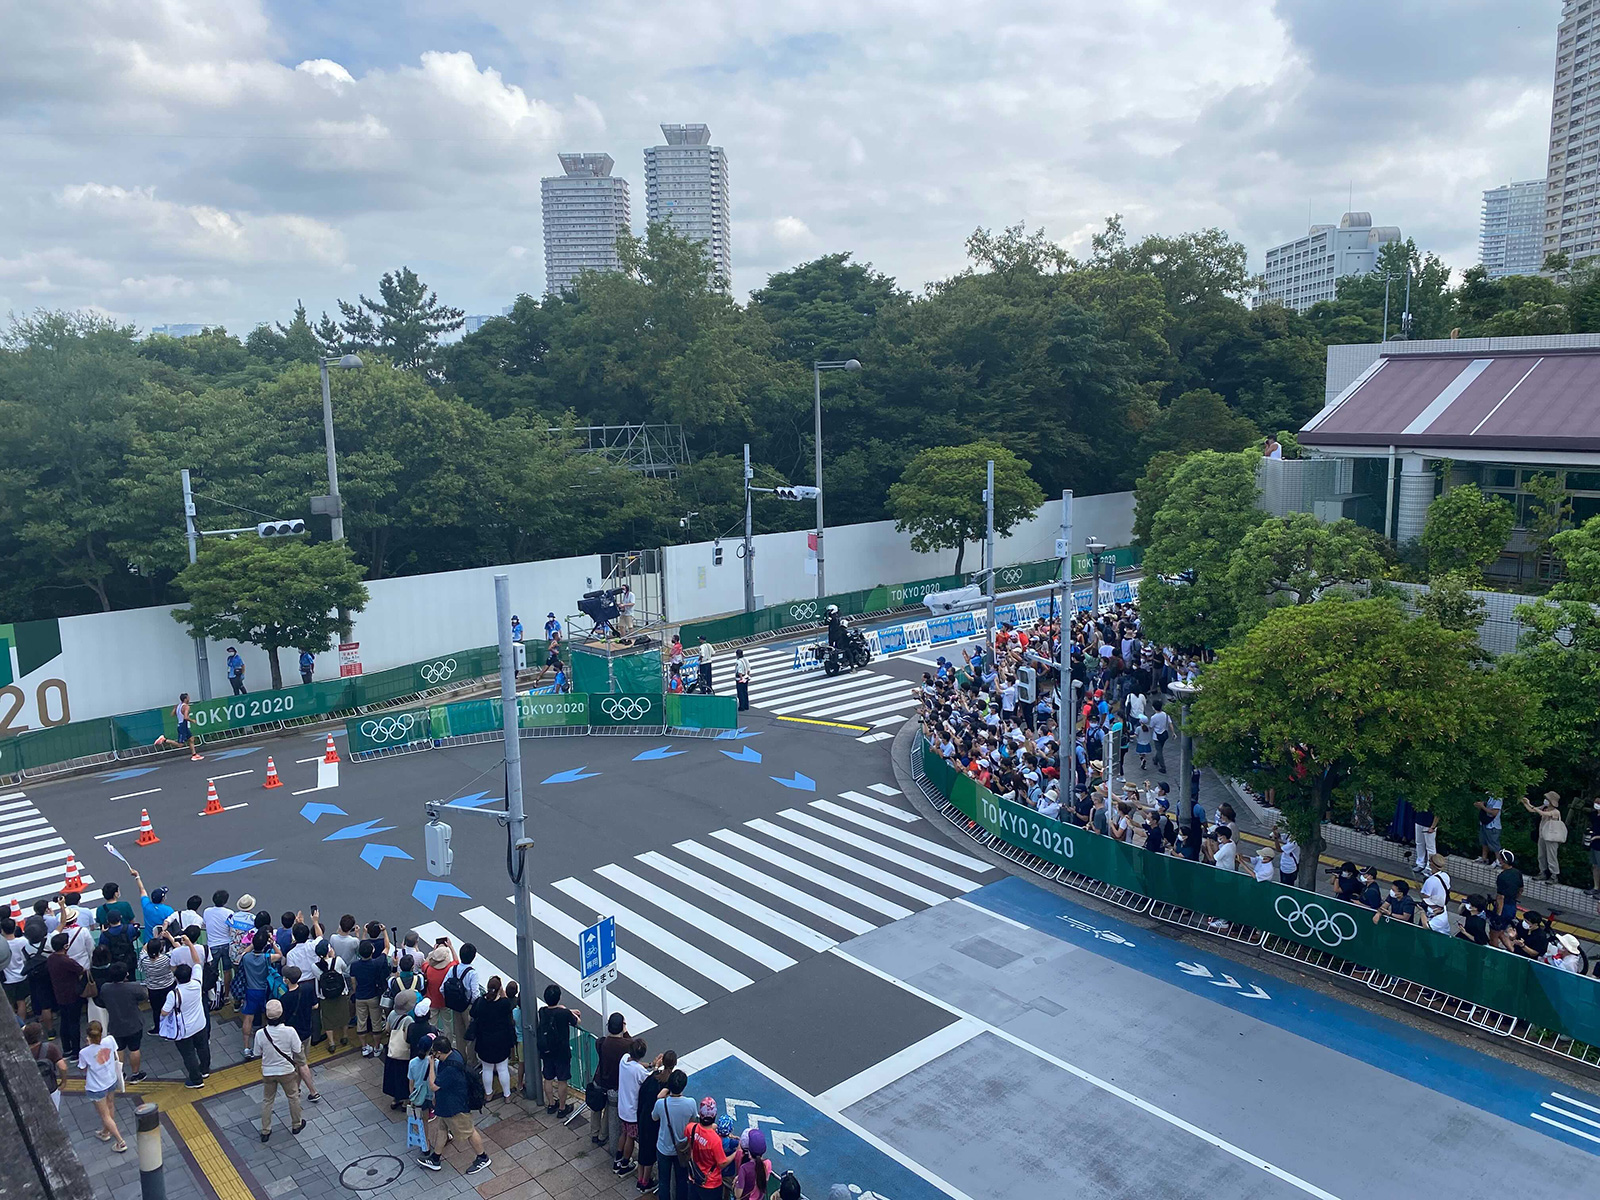 Large crowds of Japanese spectators line the streets to watch the mixed triathlon event early Saturday morning.